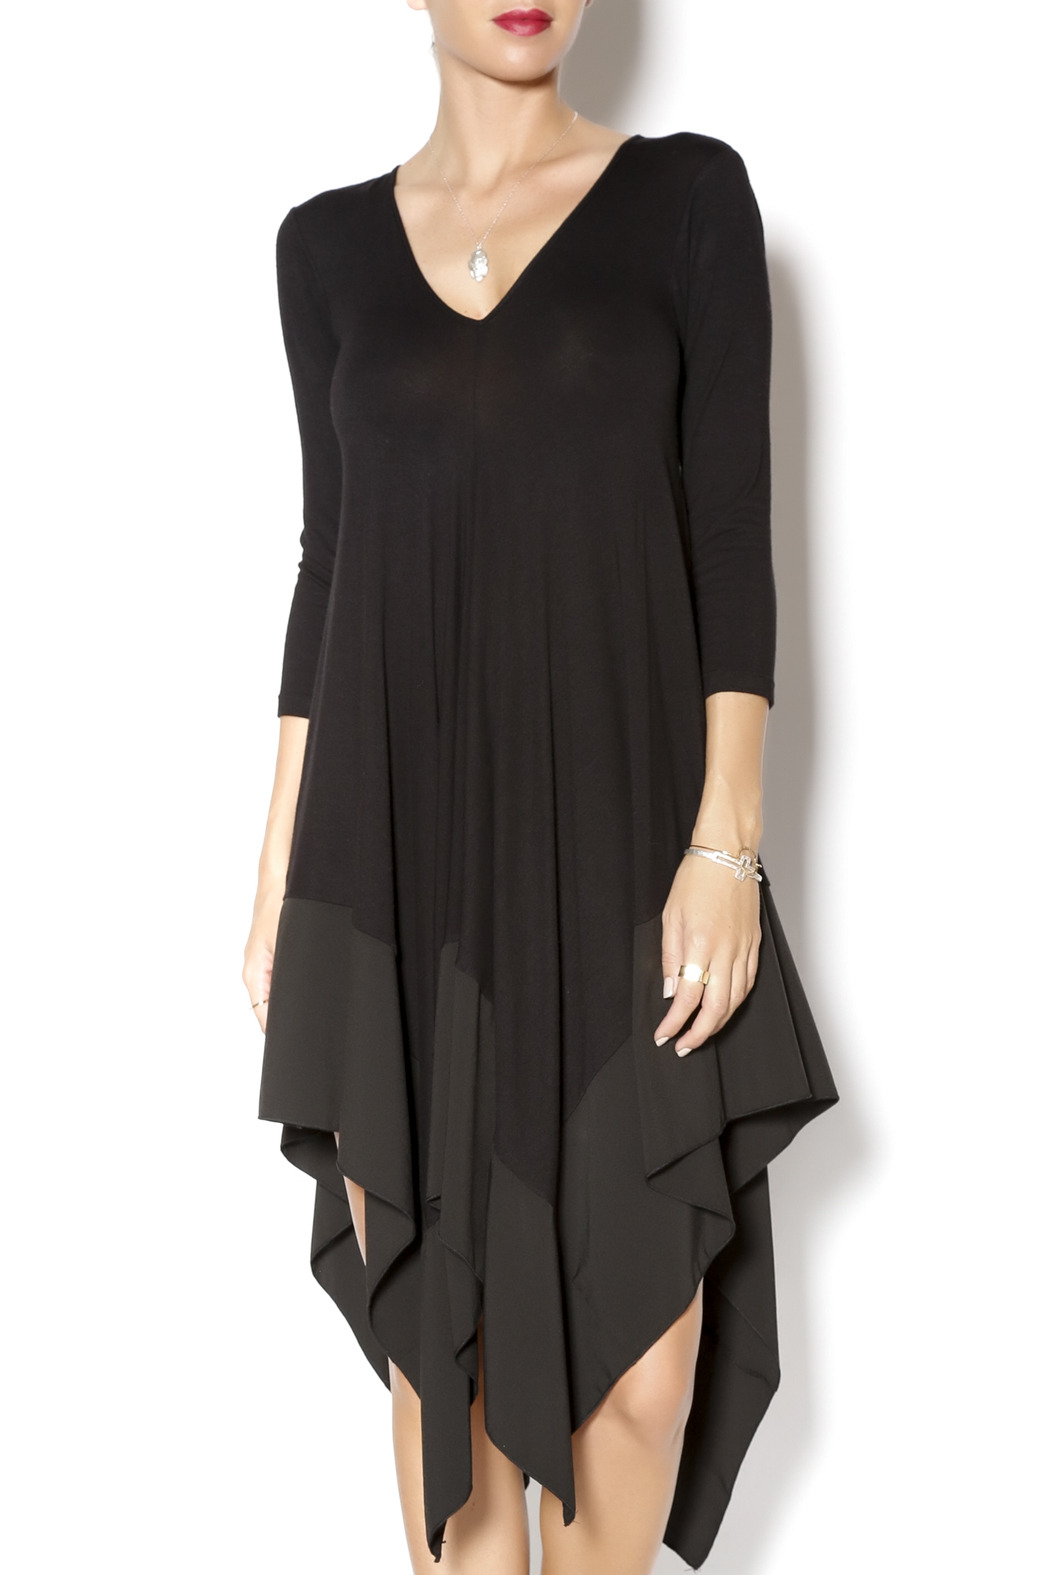 Gracia swing top black from texas by armario de la bella for Swing gracia